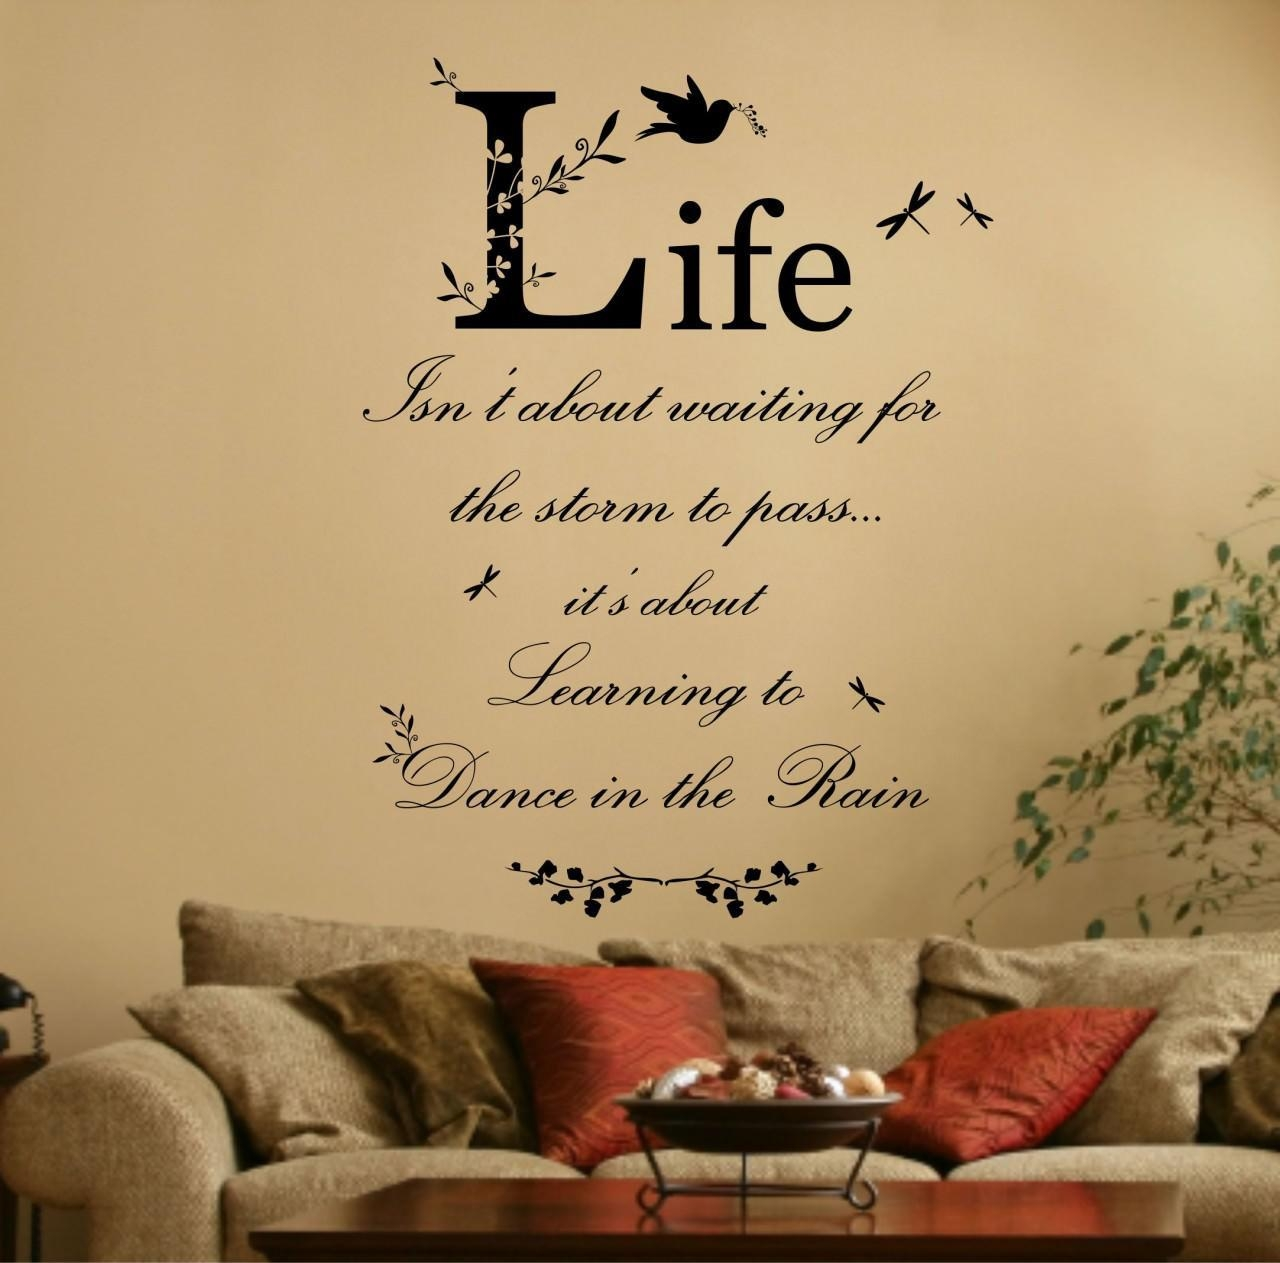 Wall Art Design Ideas: Simple Decals Wall Art With Sayings For Family Sayings Wall Art (Image 12 of 20)